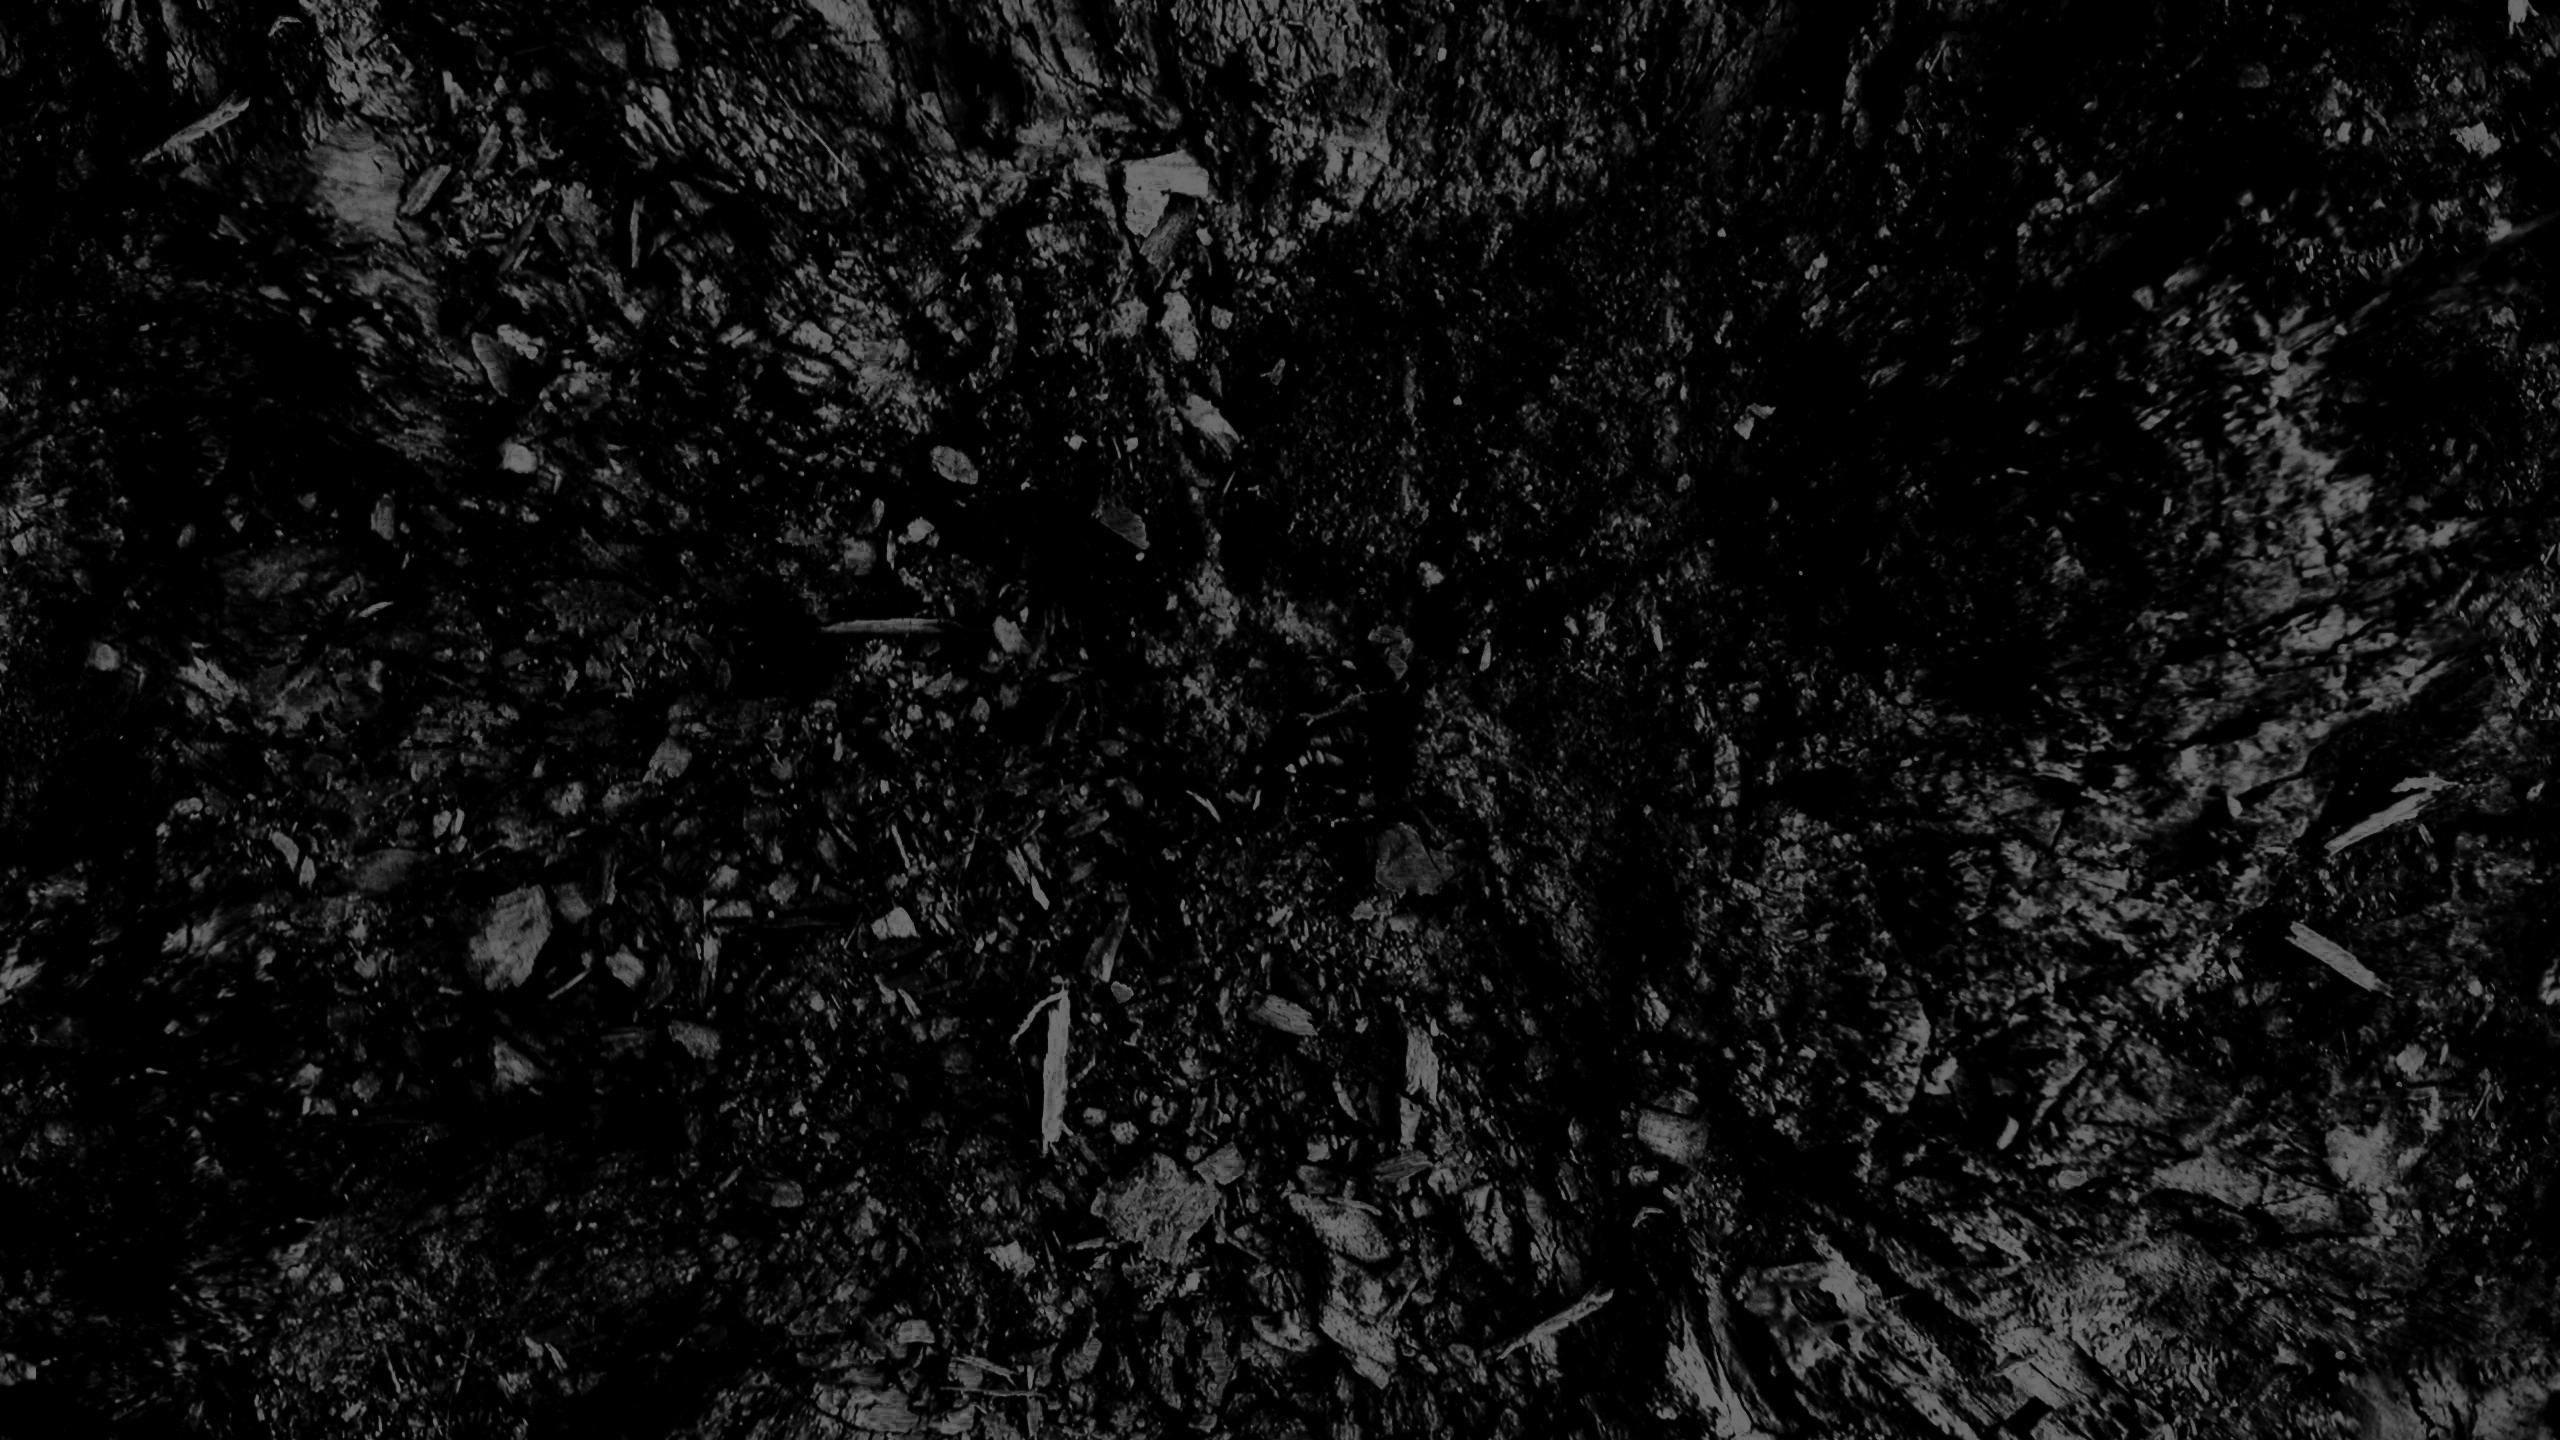 Download wallpaper 2560x1440 dark black and white abstract 2560x1440